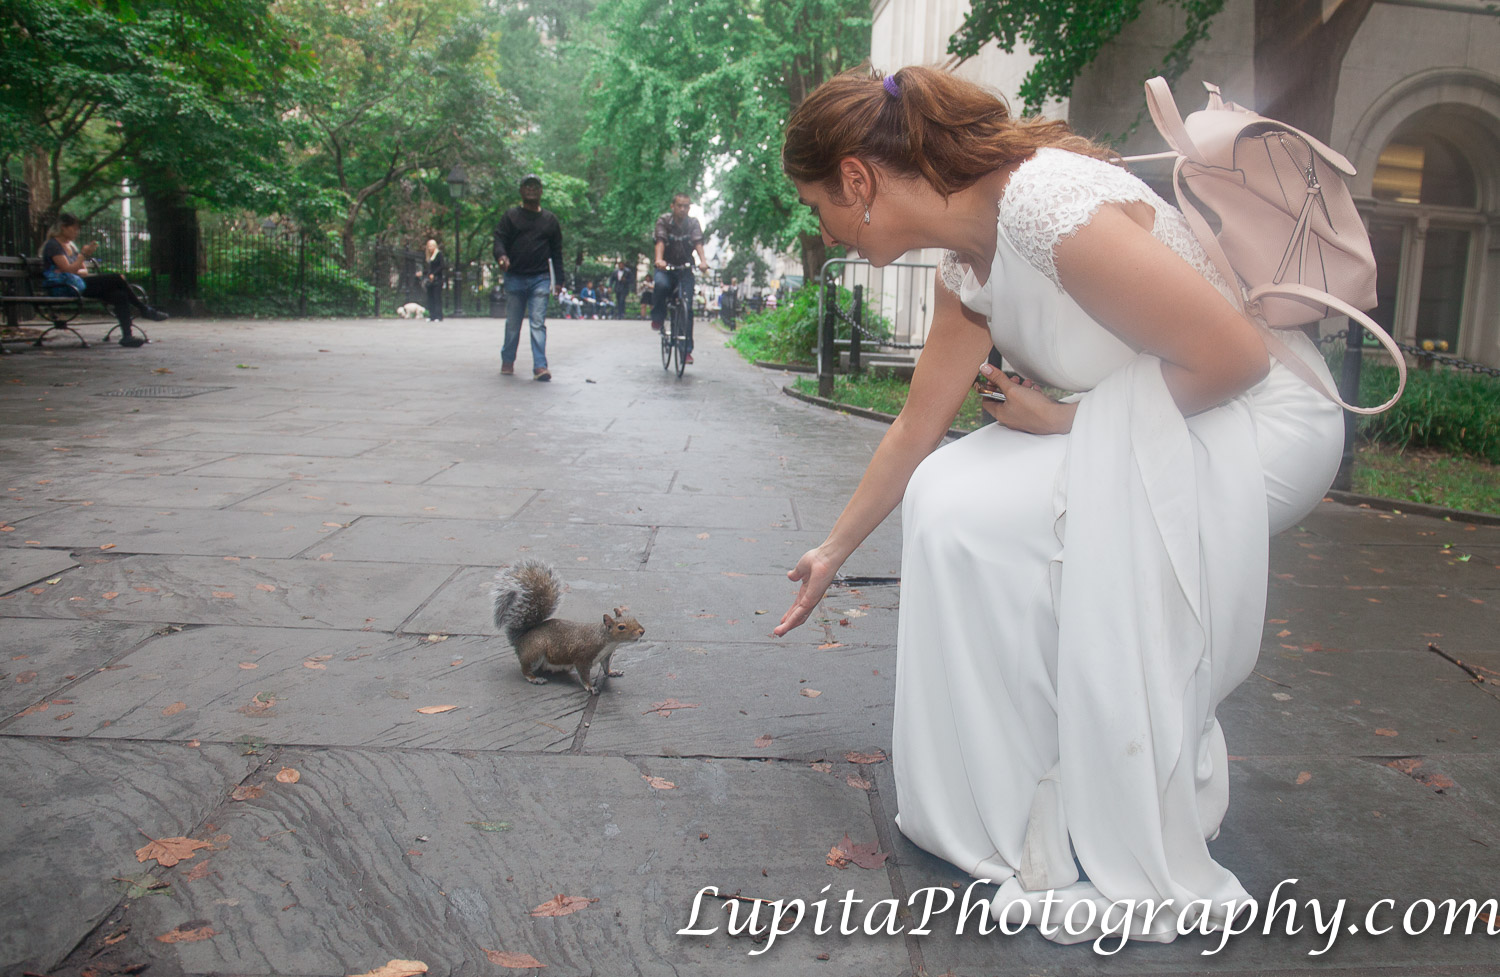 Pareja de España y una ardilla en un parque en Manhattan. Ciudad de Nueva York. Couple from Spain and a squirrel in a park in Manhattan. New York City.